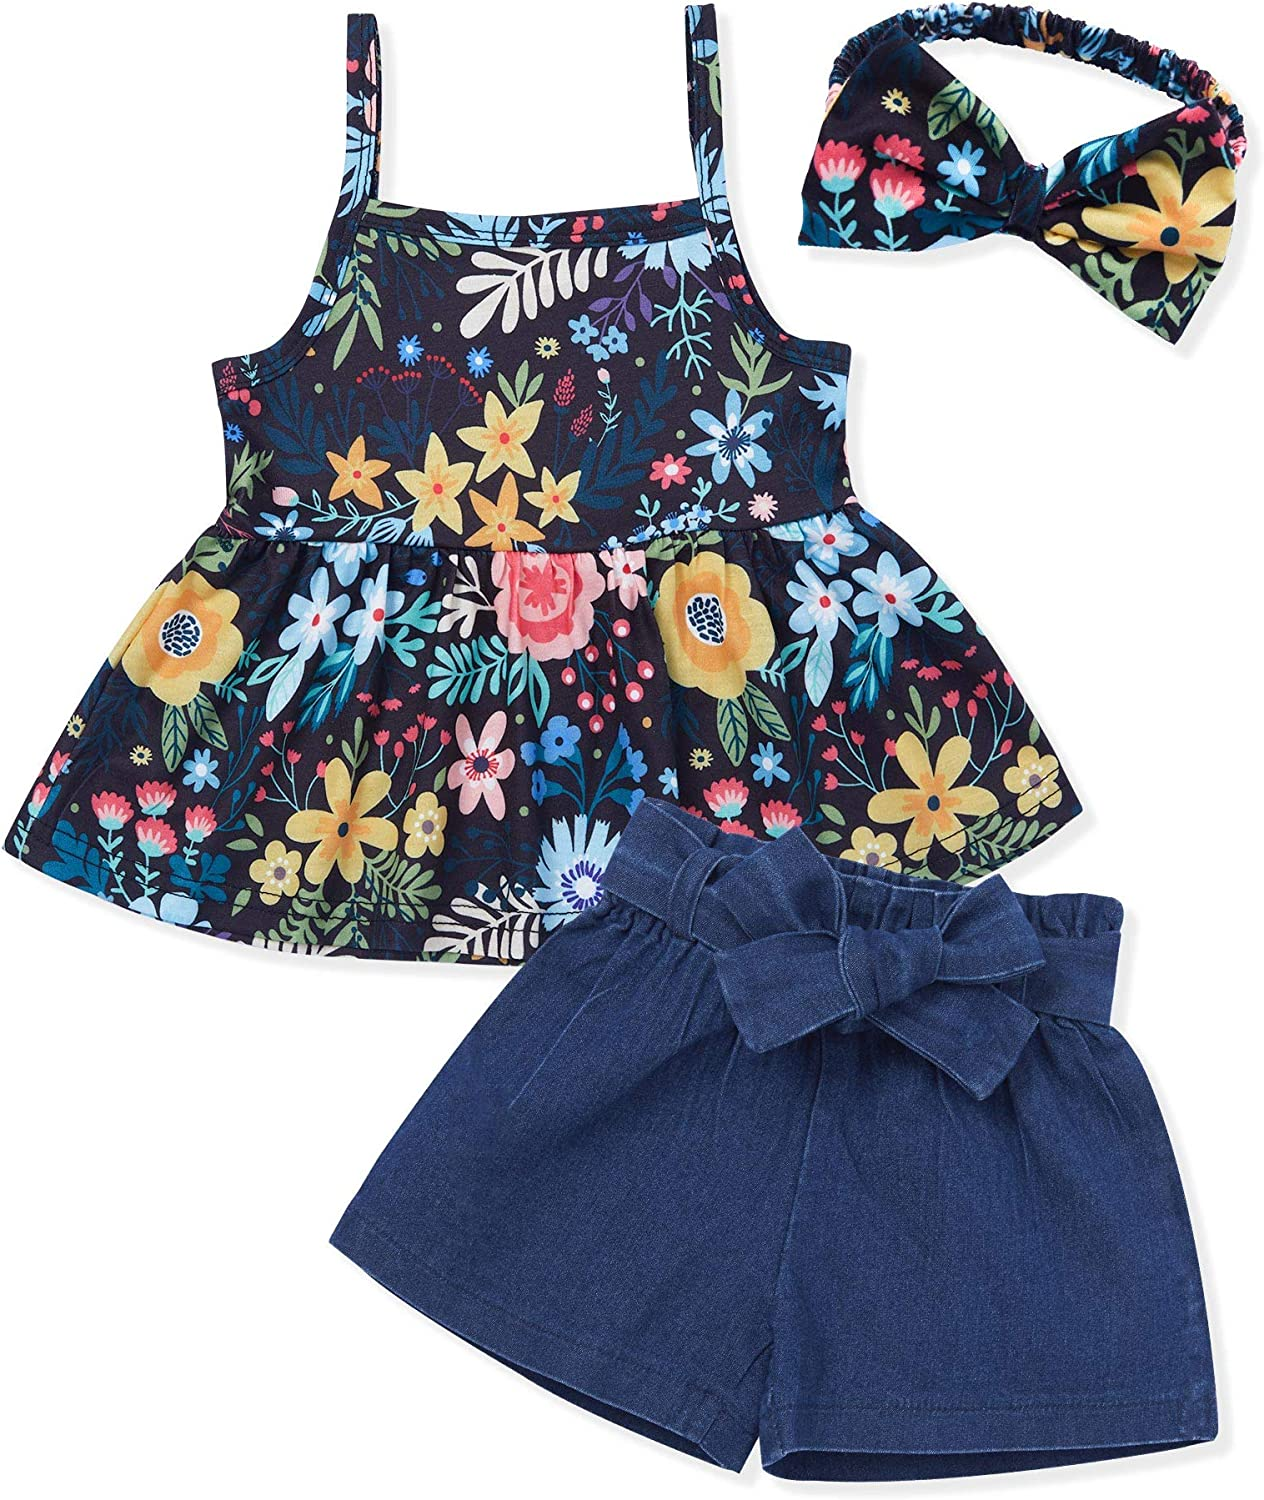 shopping Bombing free shipping Newborn Infant Baby Girl Clothes Daisy Summer Floral Sleeveless